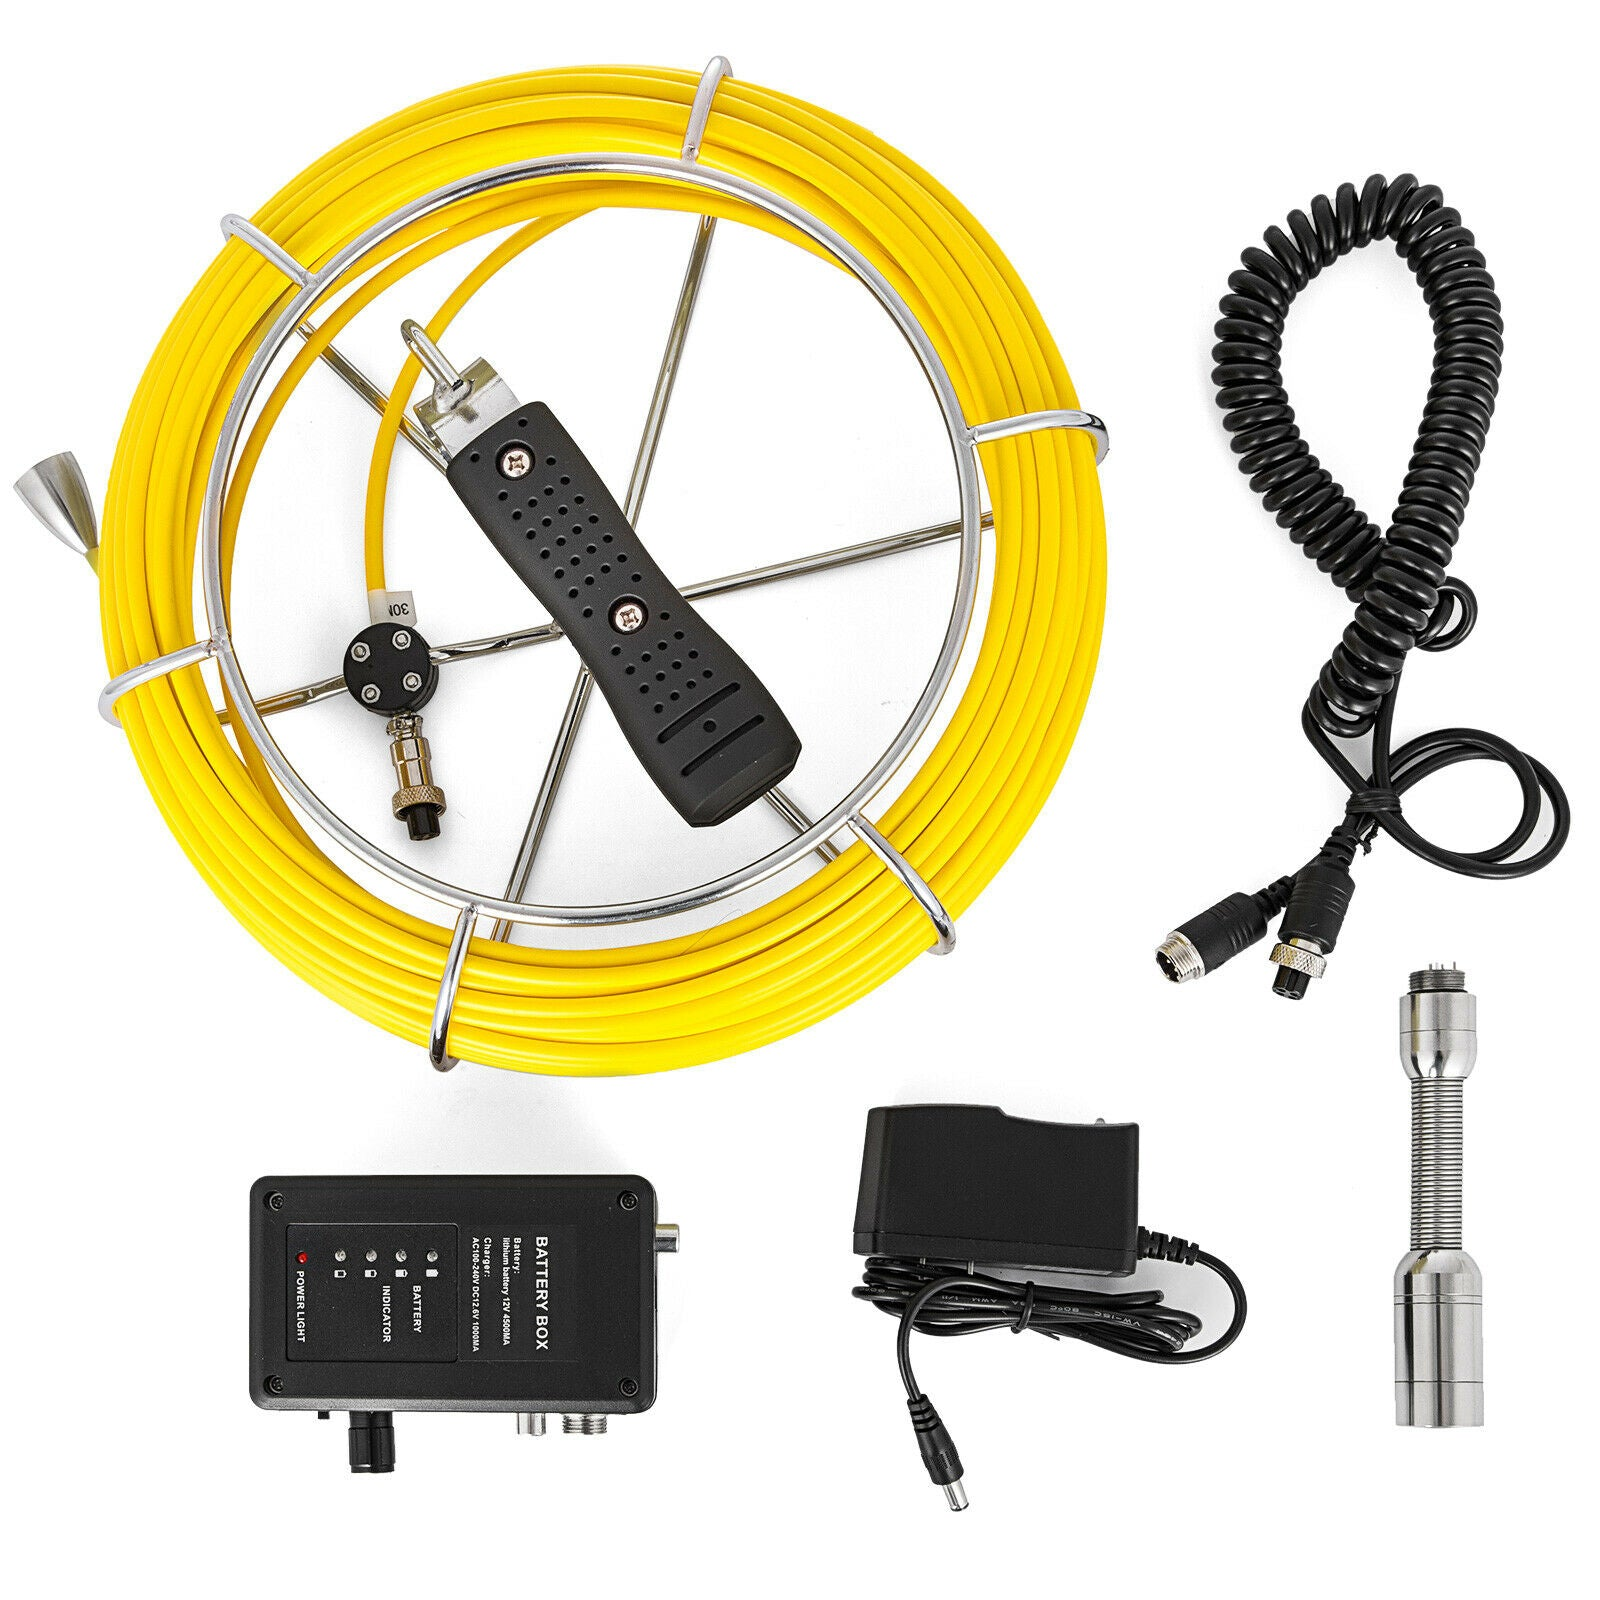 65.6ft Cable Pipe Inspection Camera Kit Endoscope Ip68 Water-proof Night Vision